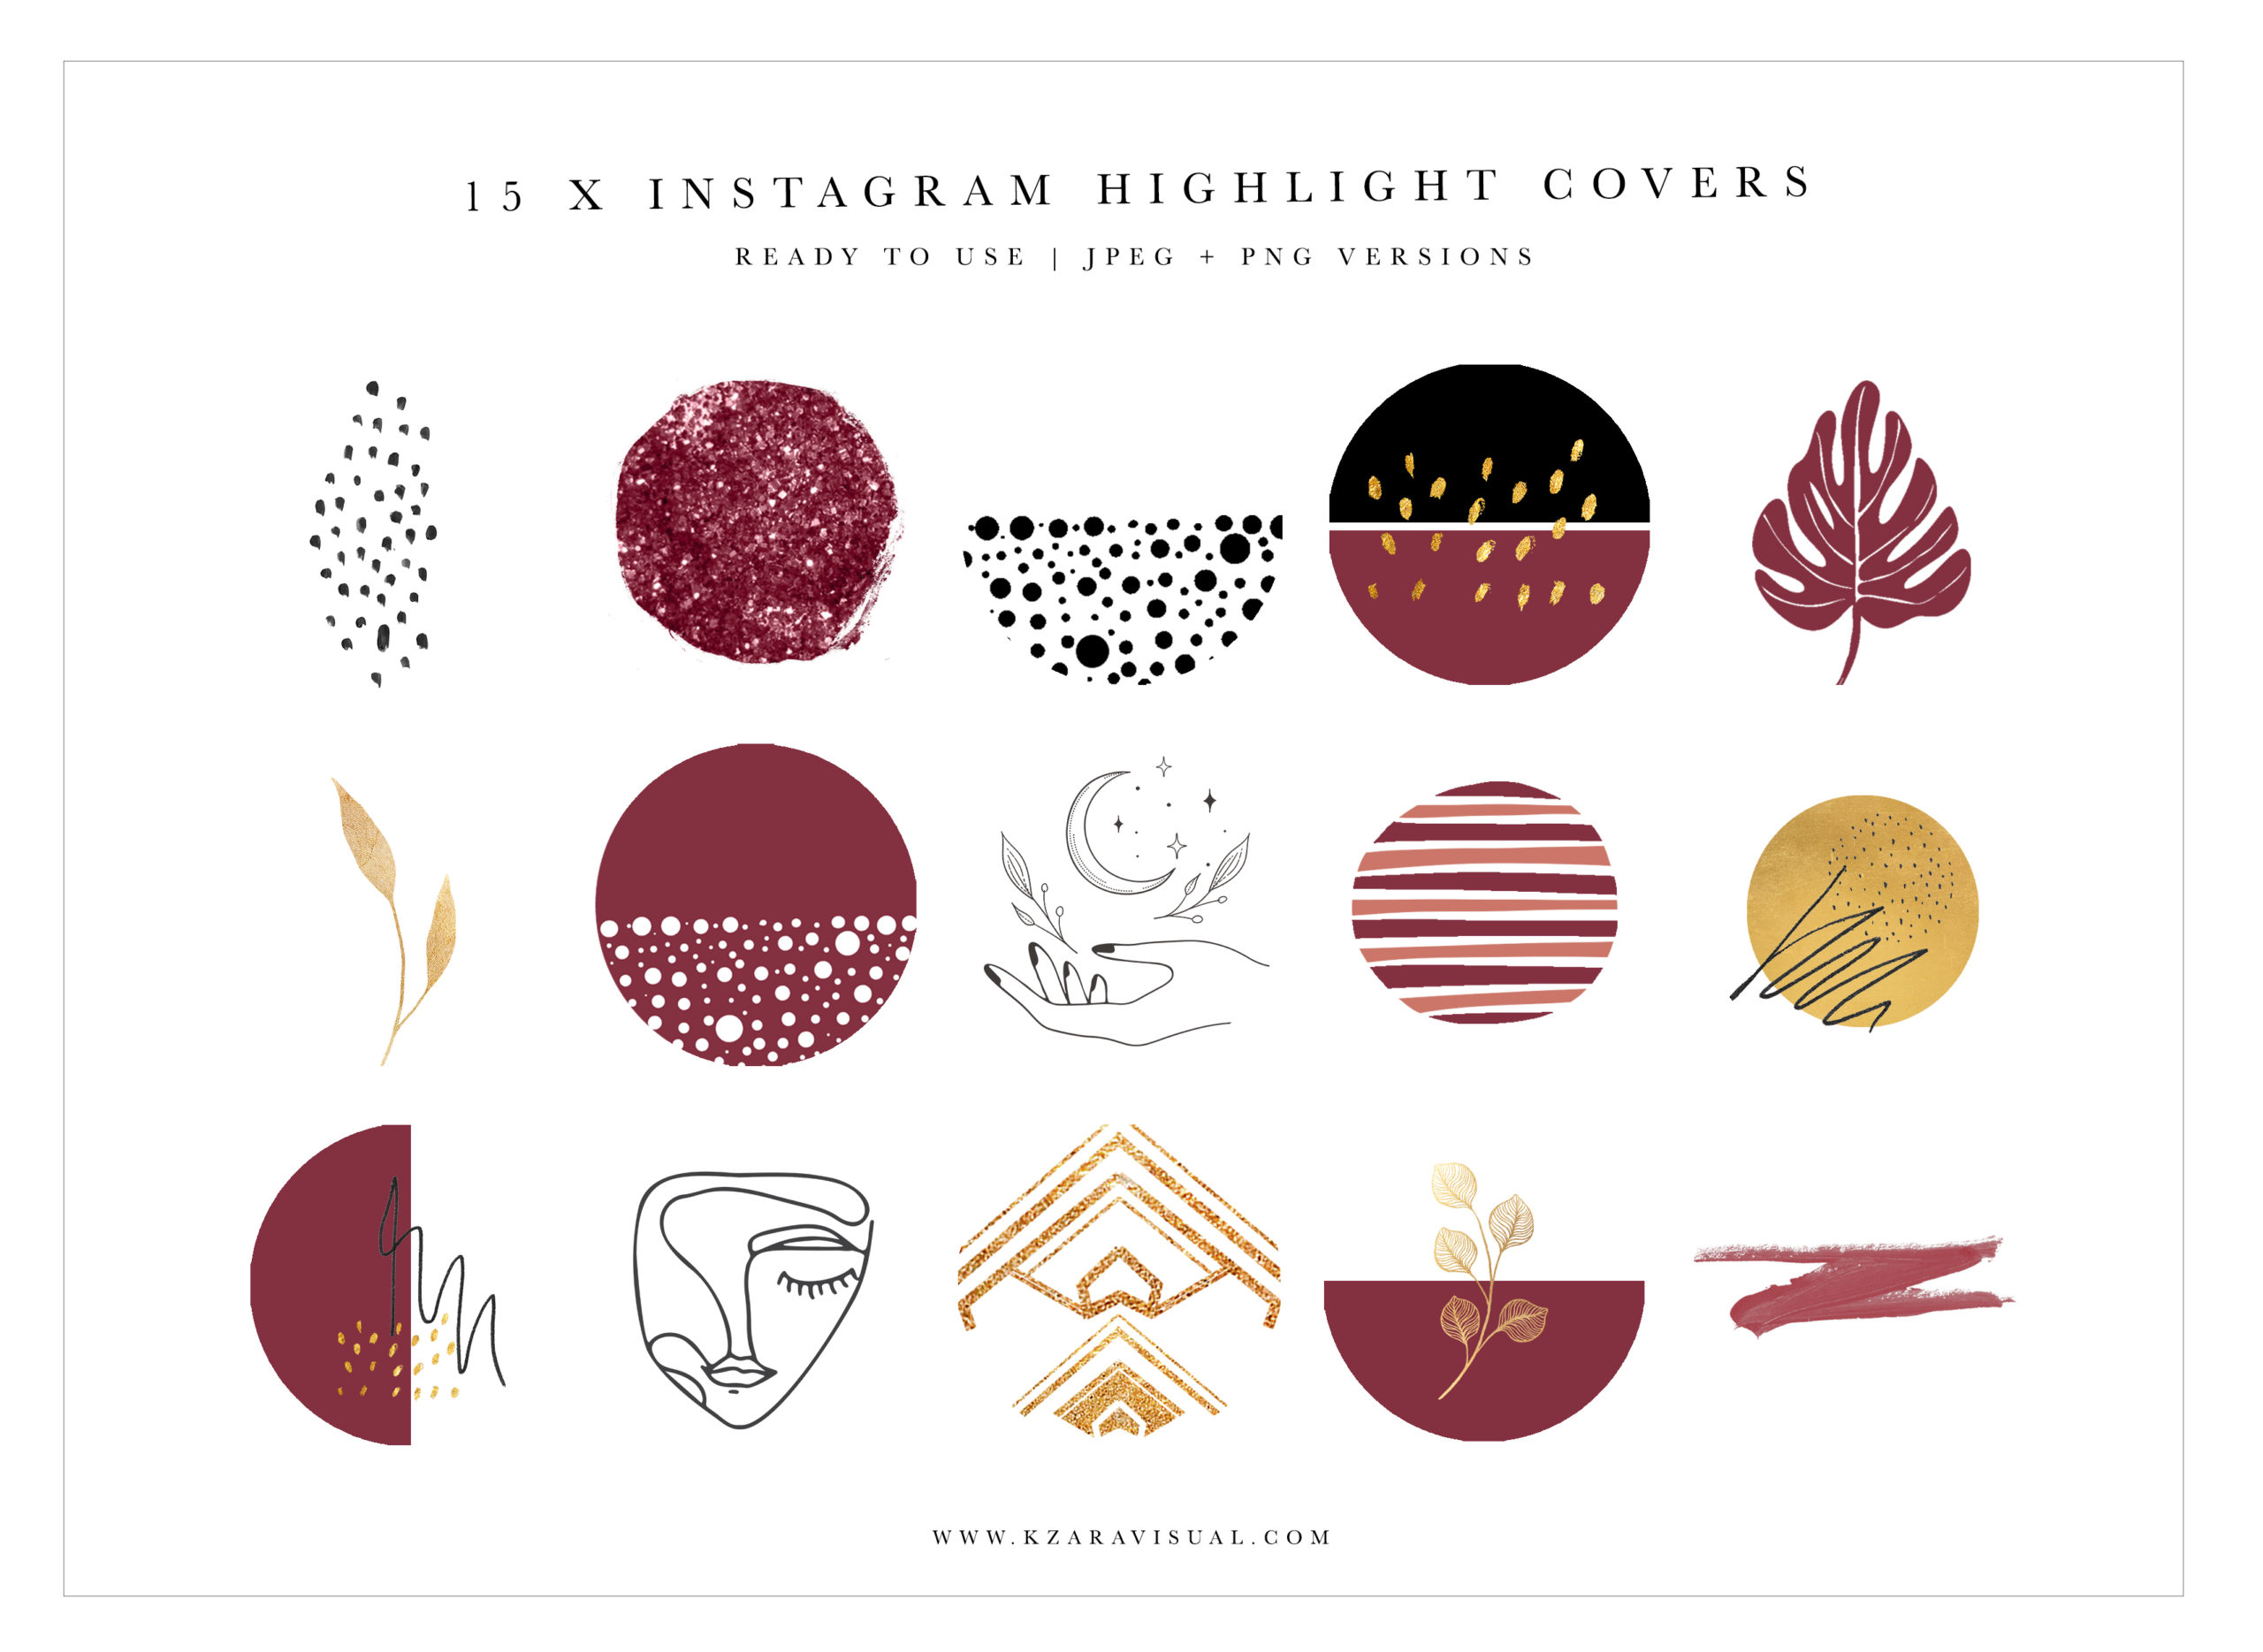 Instagram Highlight Covers 43 Boho Instagram Icons Abstract Highlights Burgundy Instagram Crella